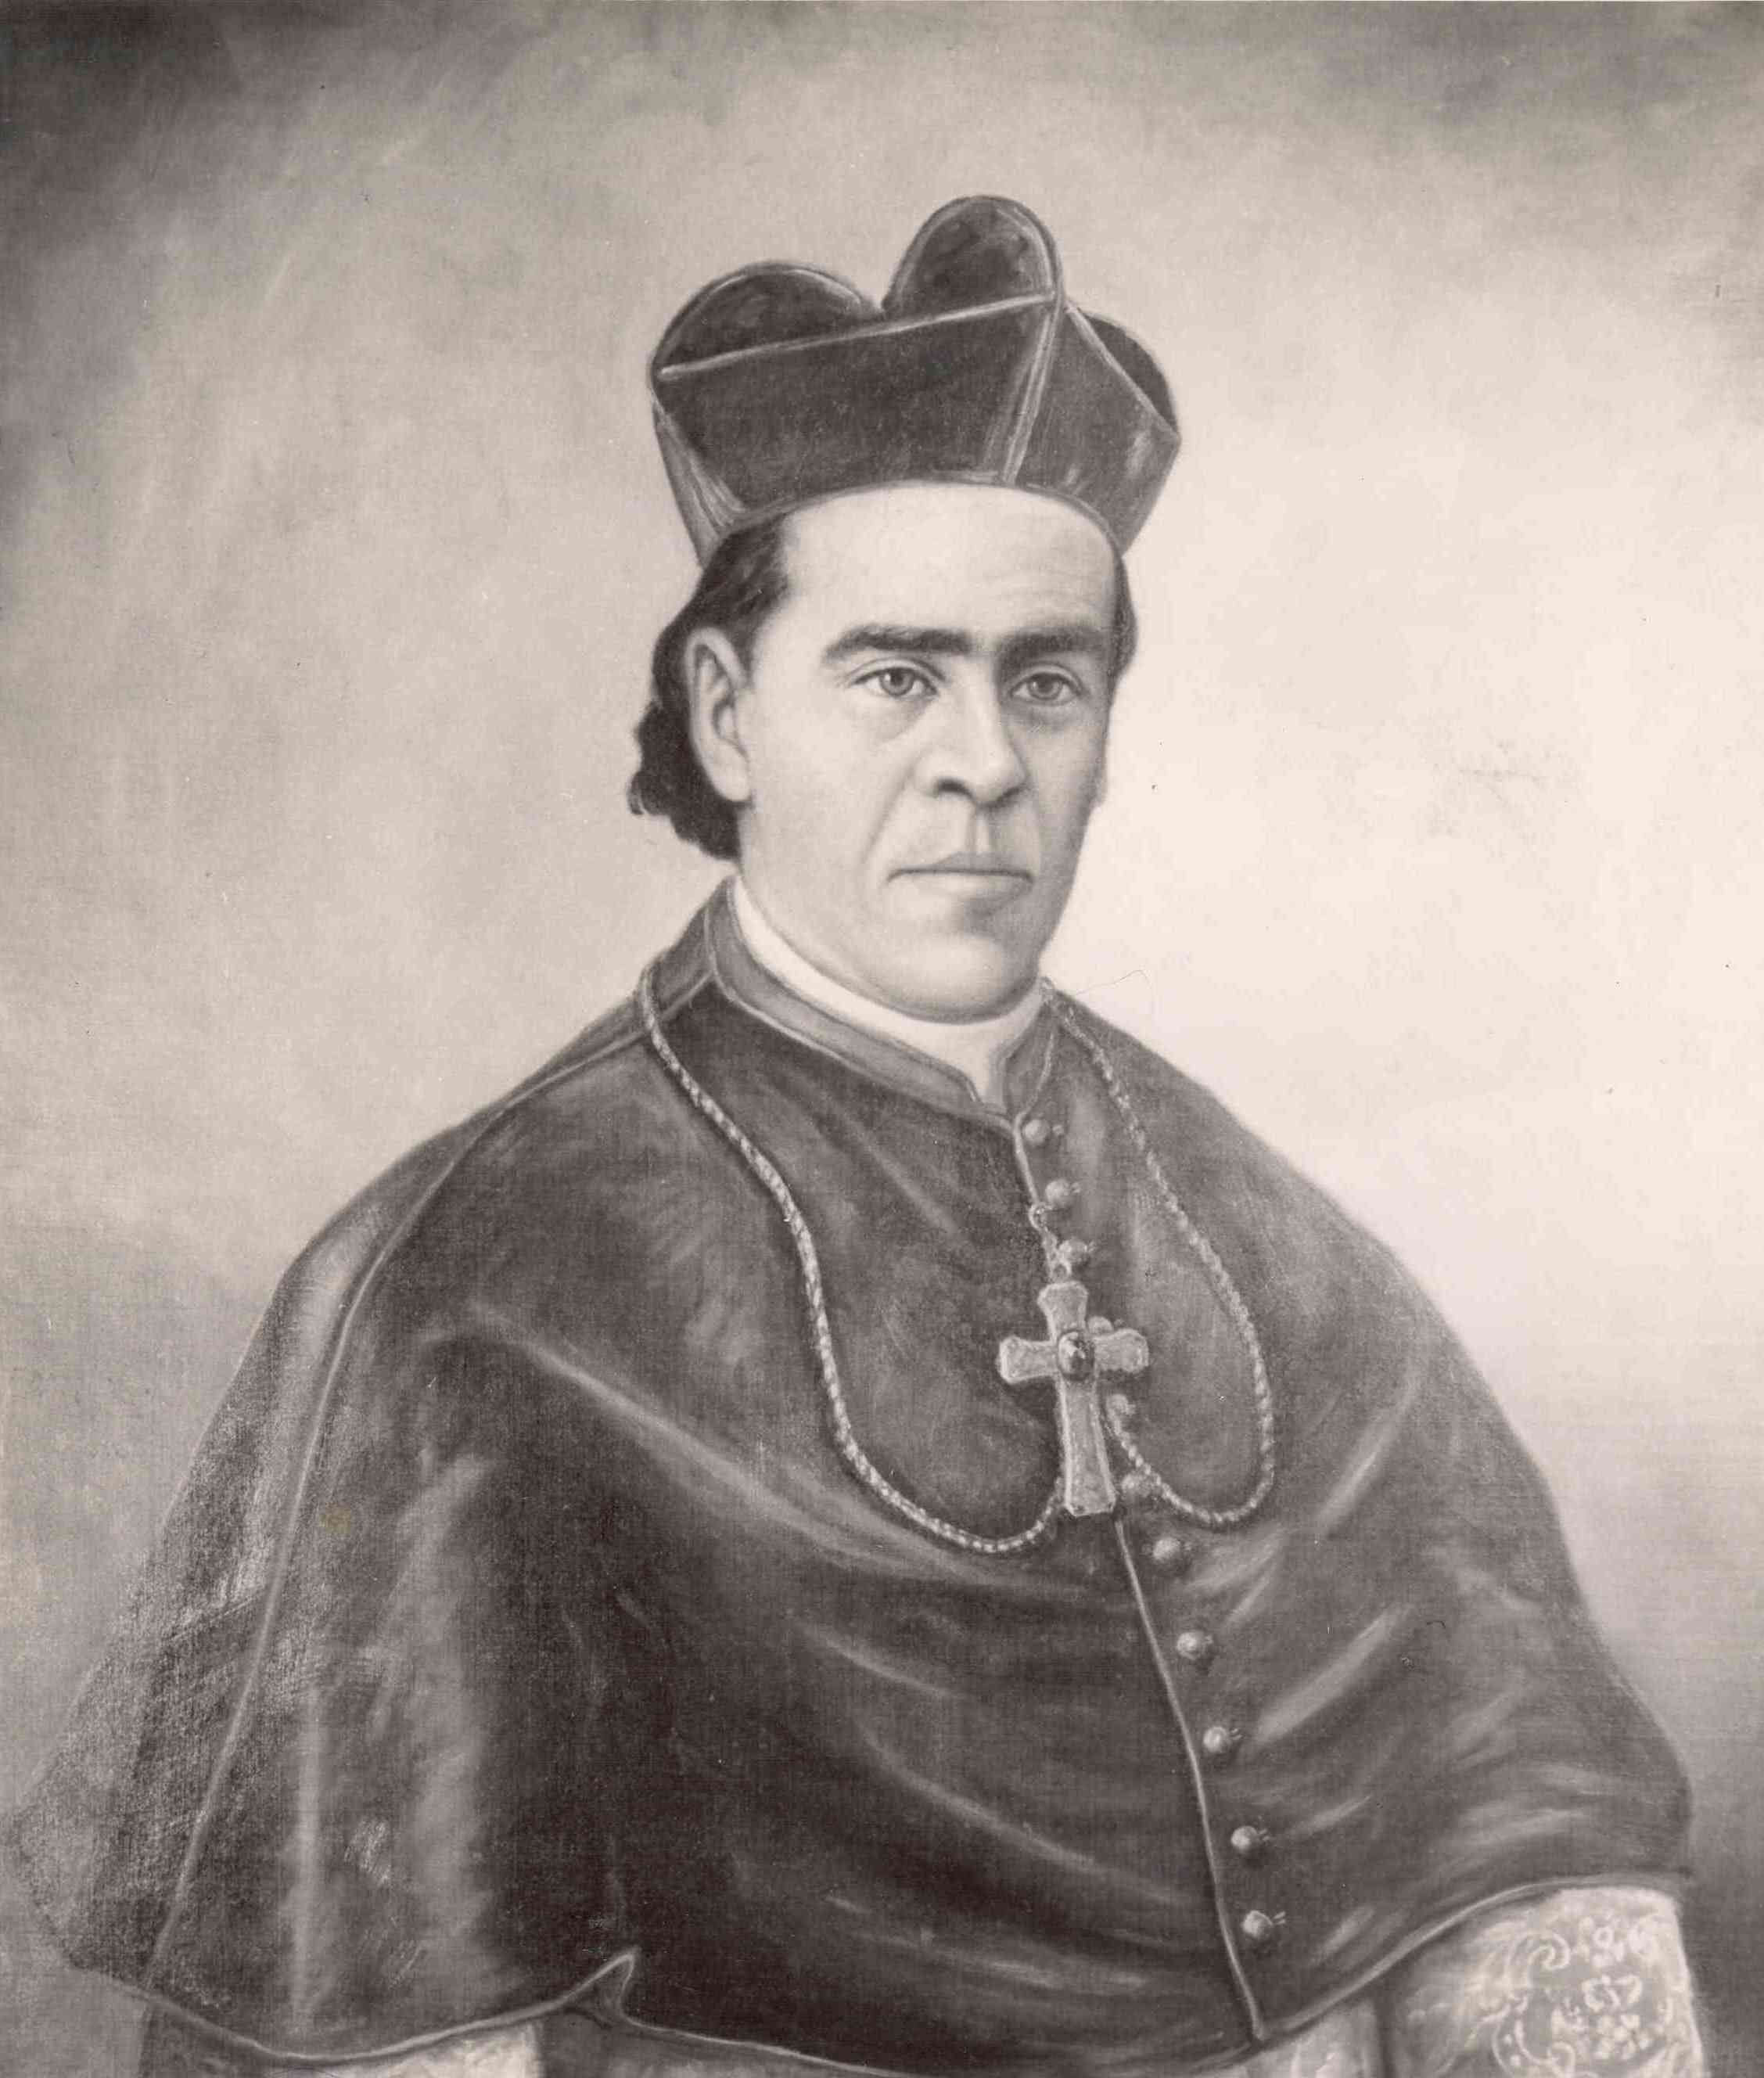 Bishop Peter F. Crinnon